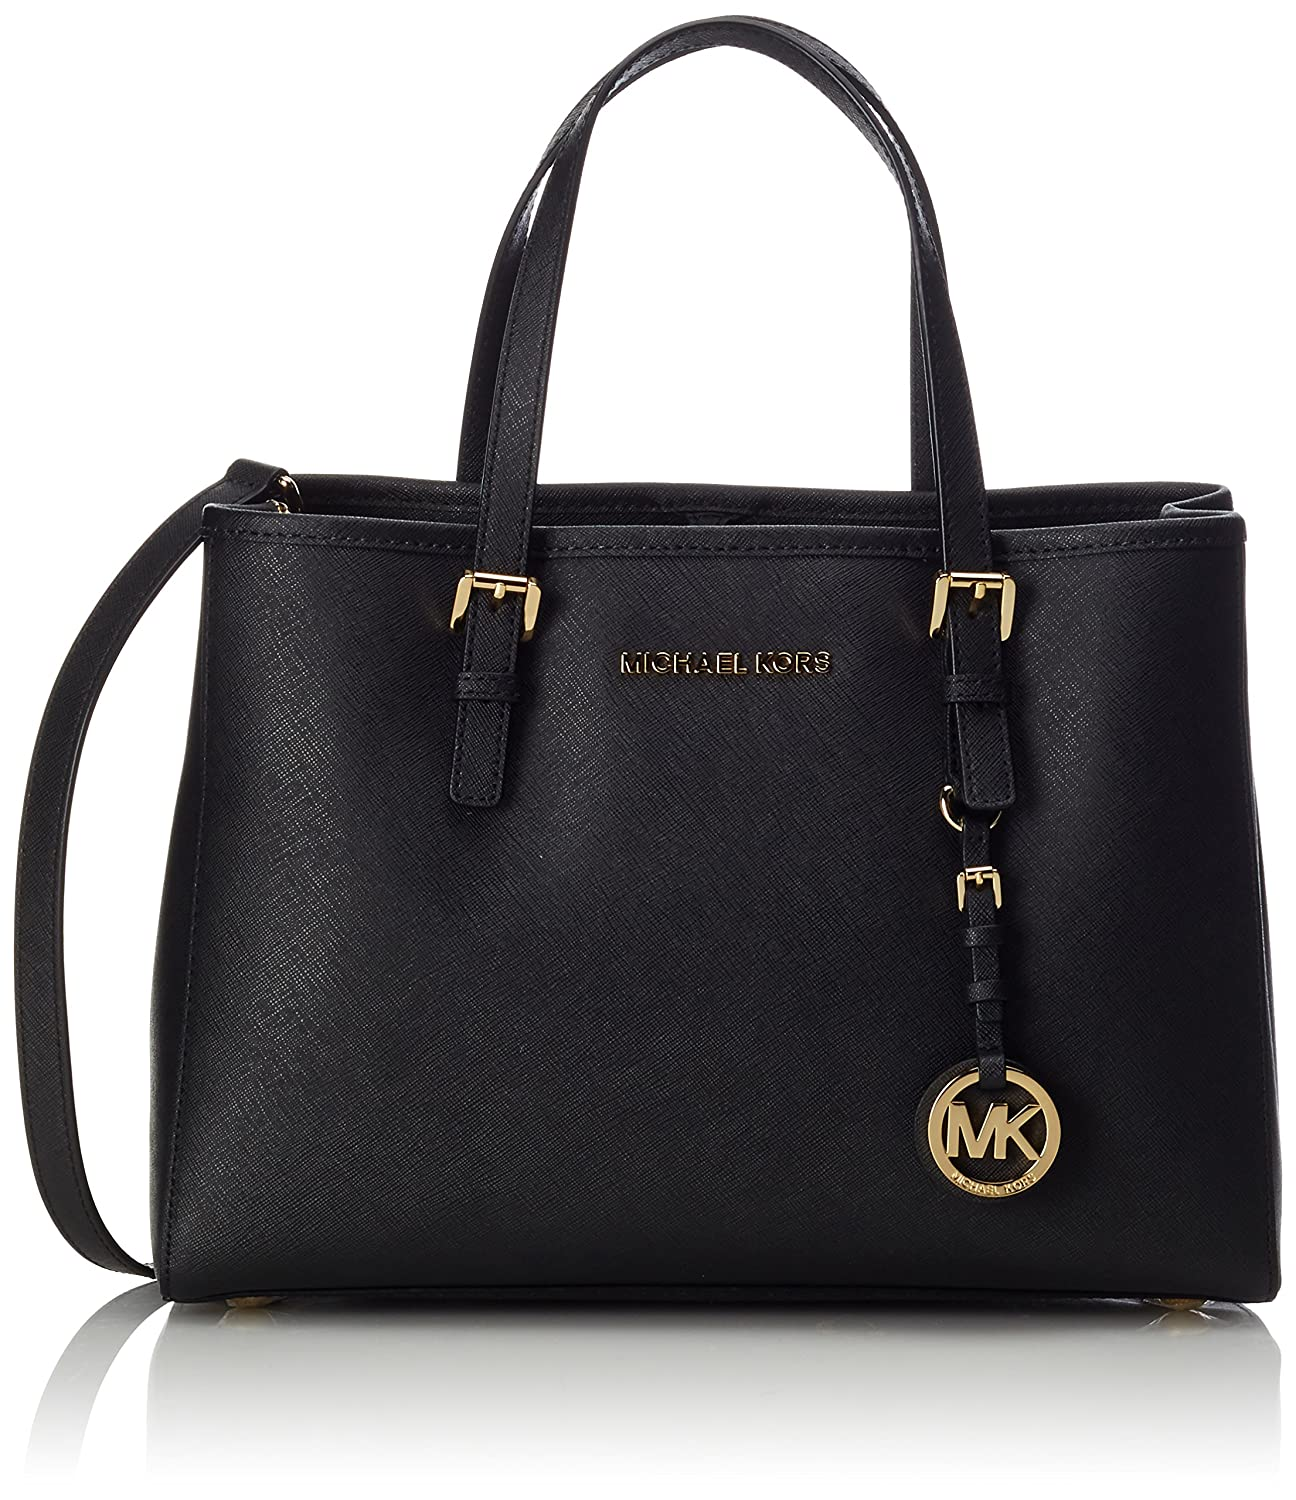 Michael Kors Womens Jet Set Travel Large Tote Black: Amazon.co.uk: Shoes \u0026  Bags